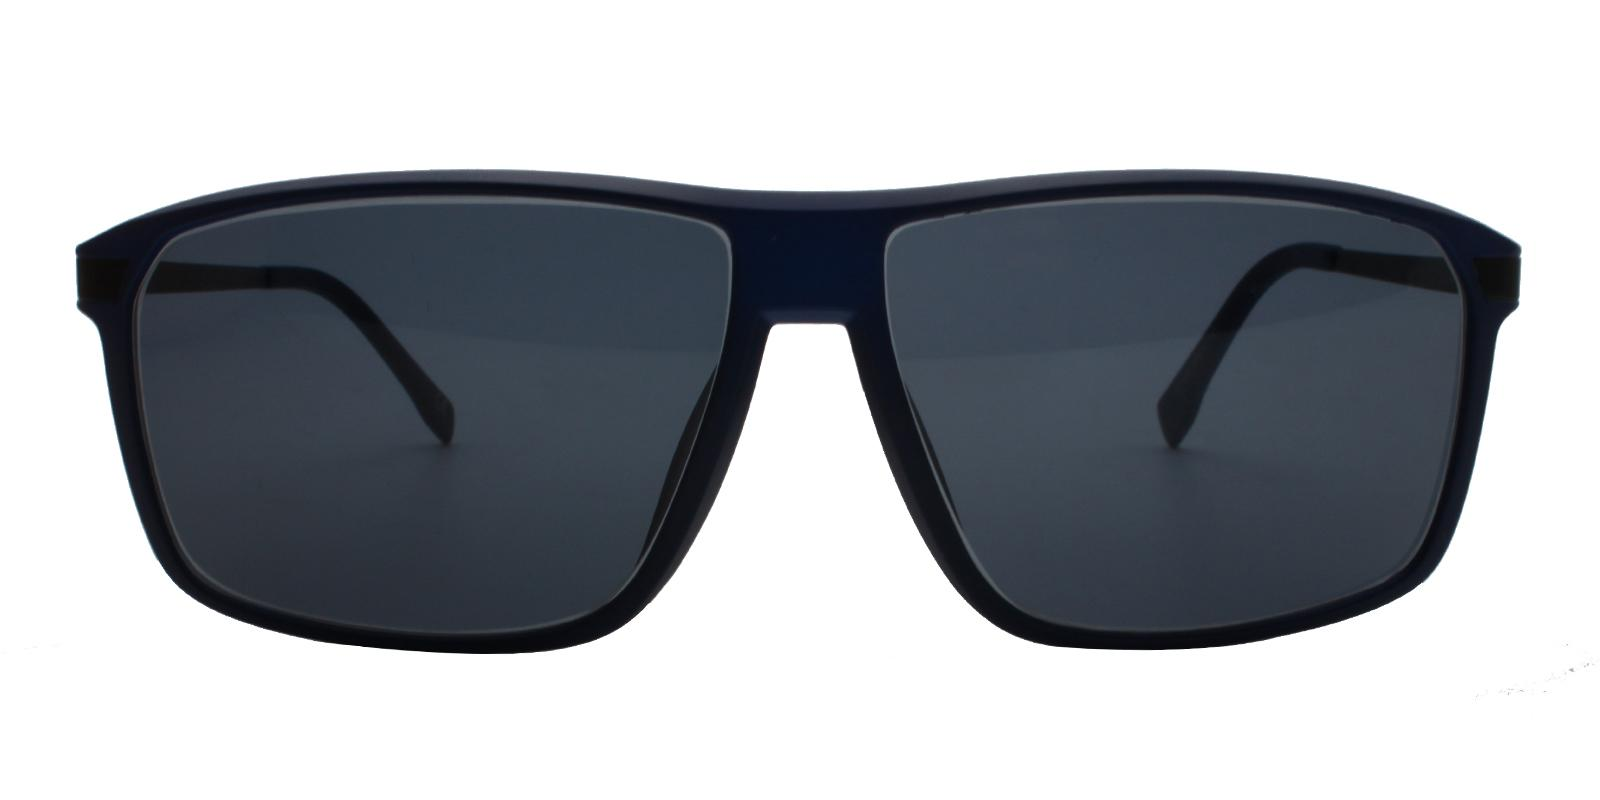 Burundi Blue TR Sunglasses , UniversalBridgeFit Frames from ABBE Glasses